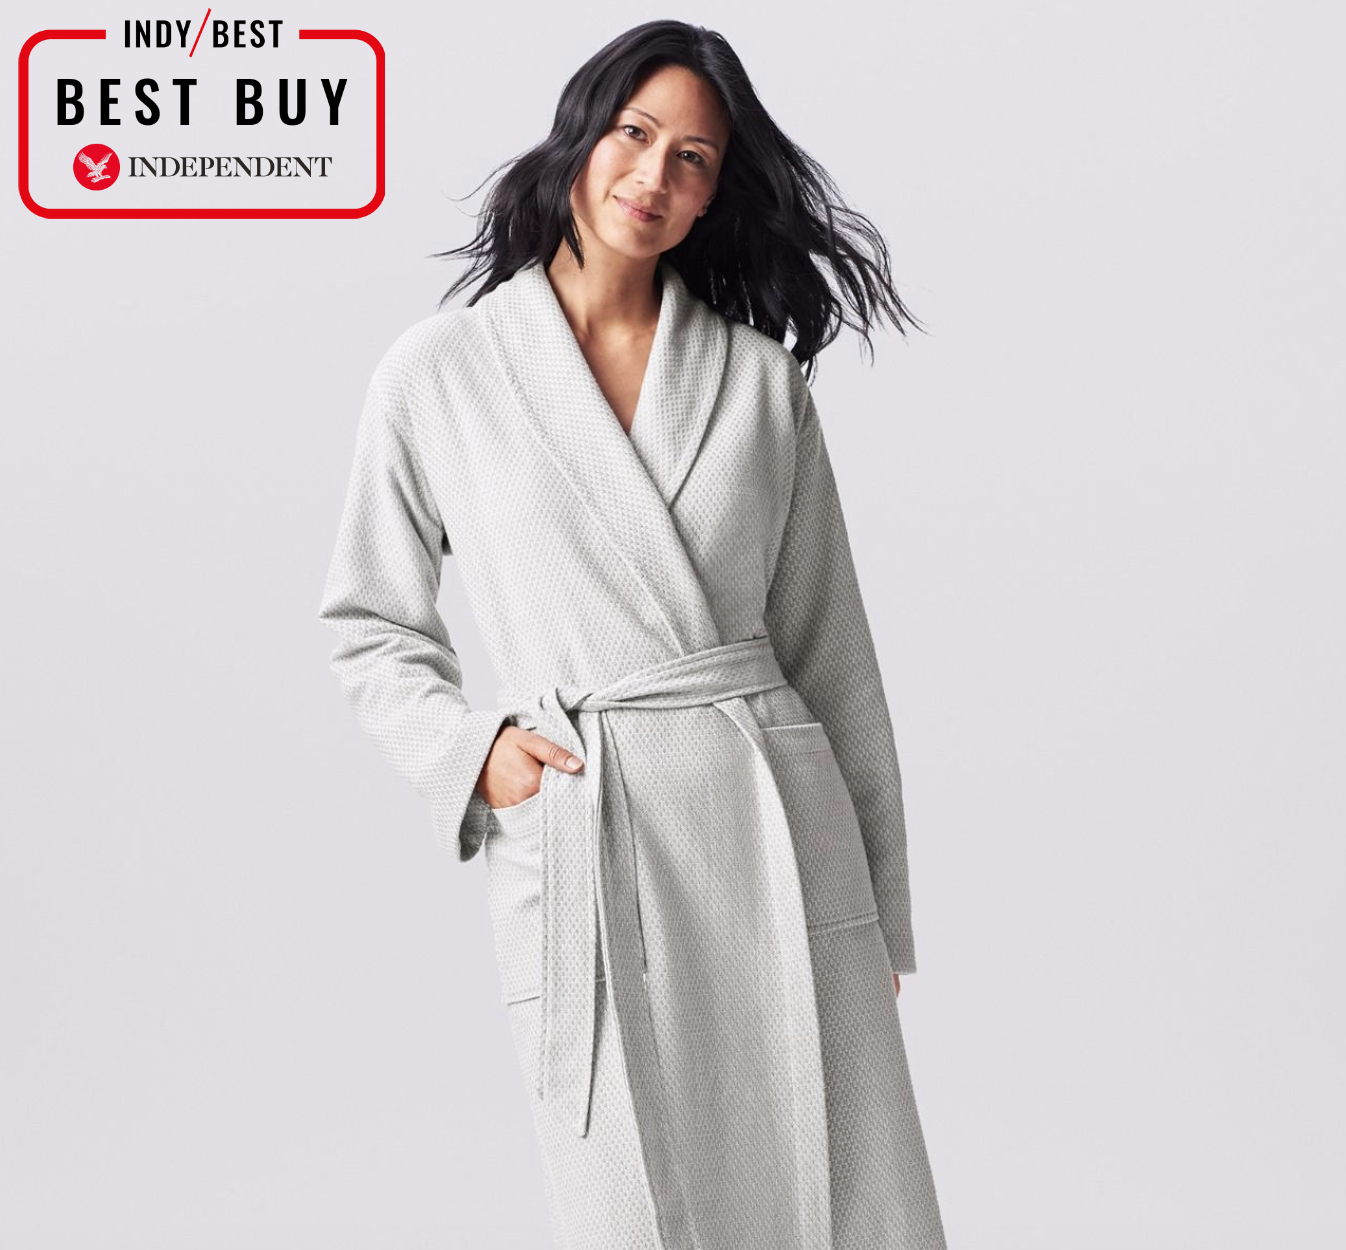 Soft and comfortable night robes Dressing gown Orange Cotton wrap dress pure silk kimono Robes for women